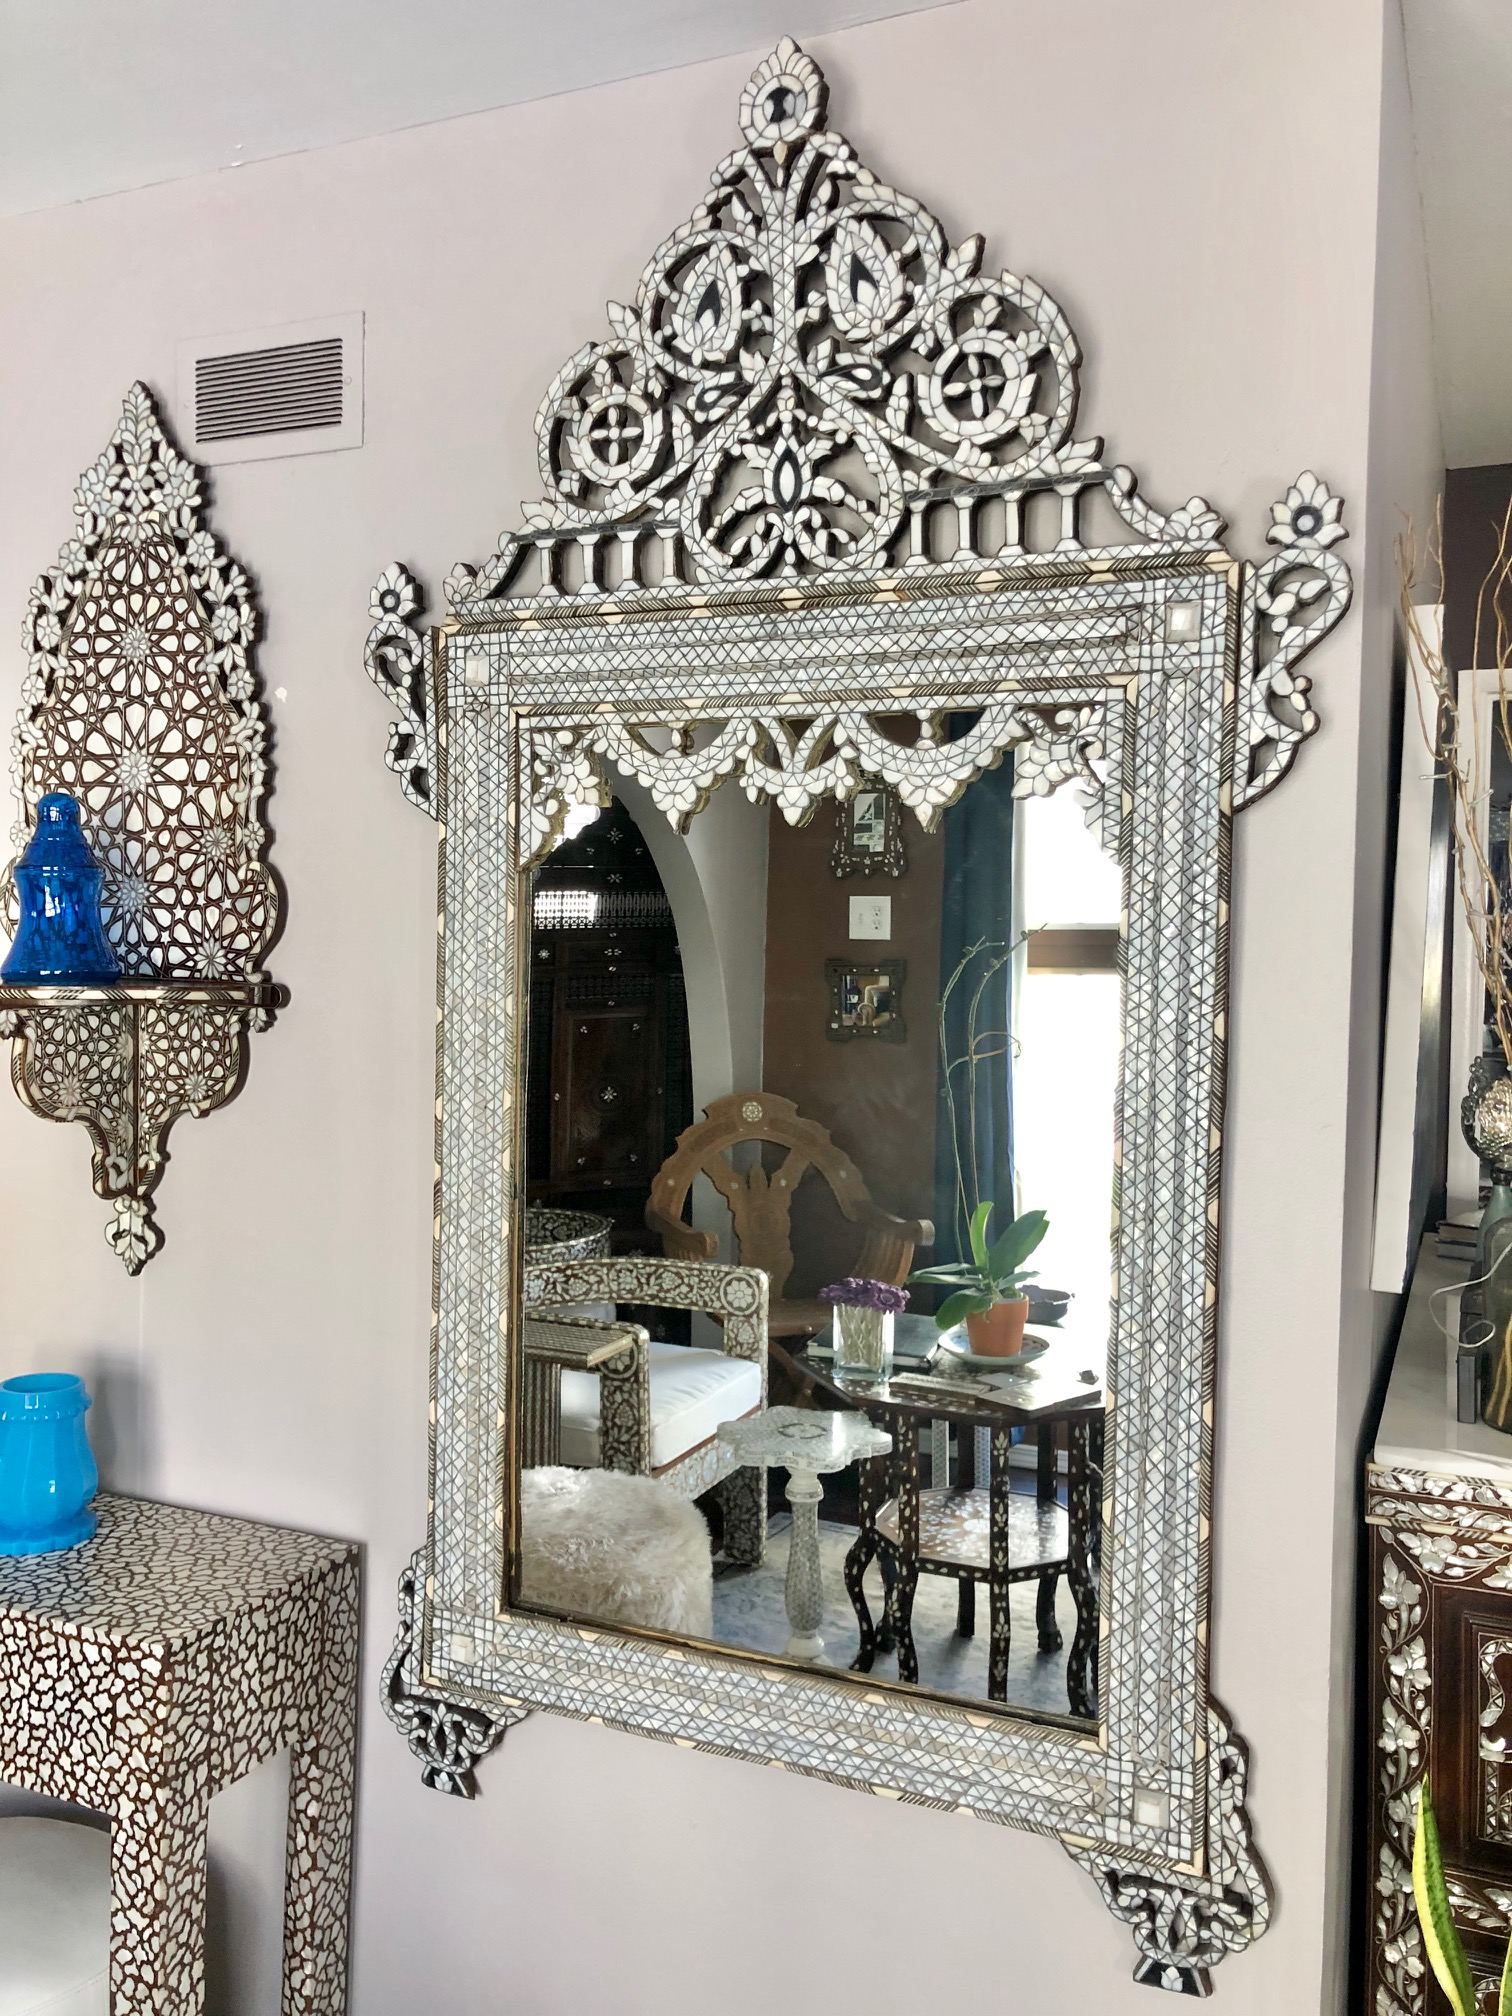 Antique Syrian mirror